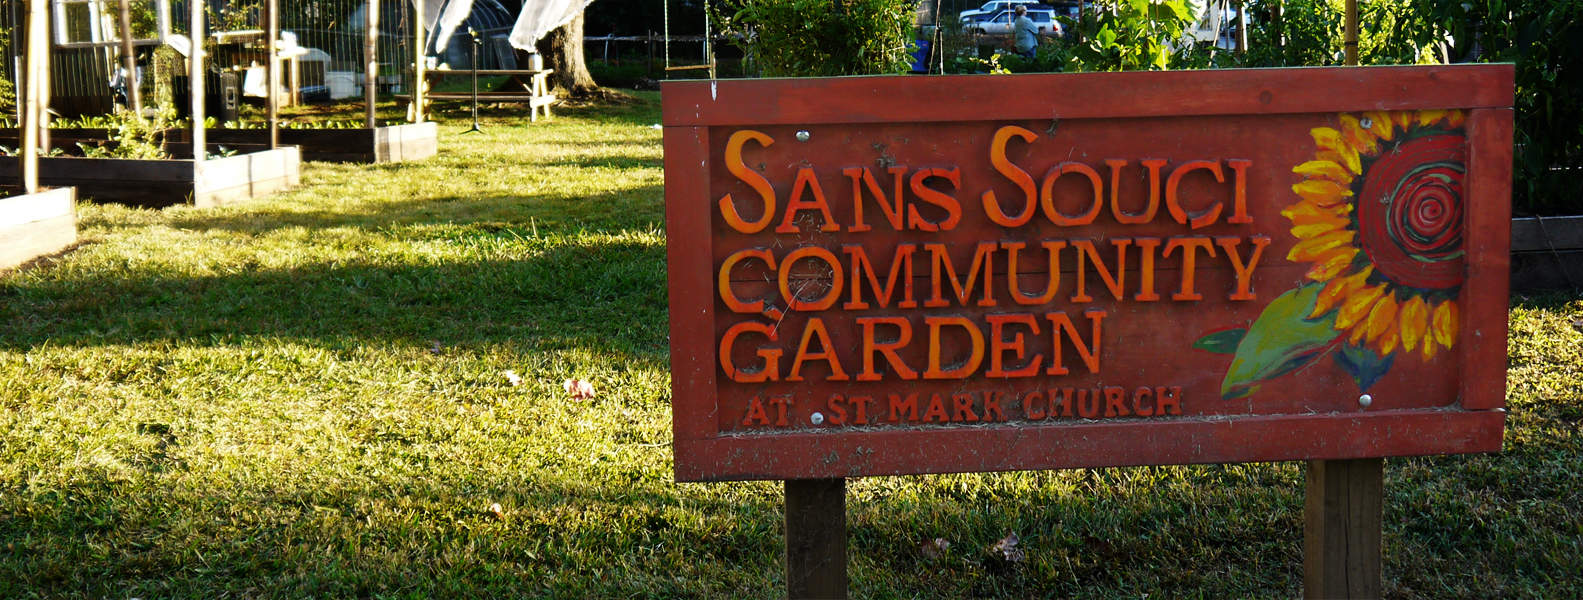 [feat img] Sans Souci Community Garden sign